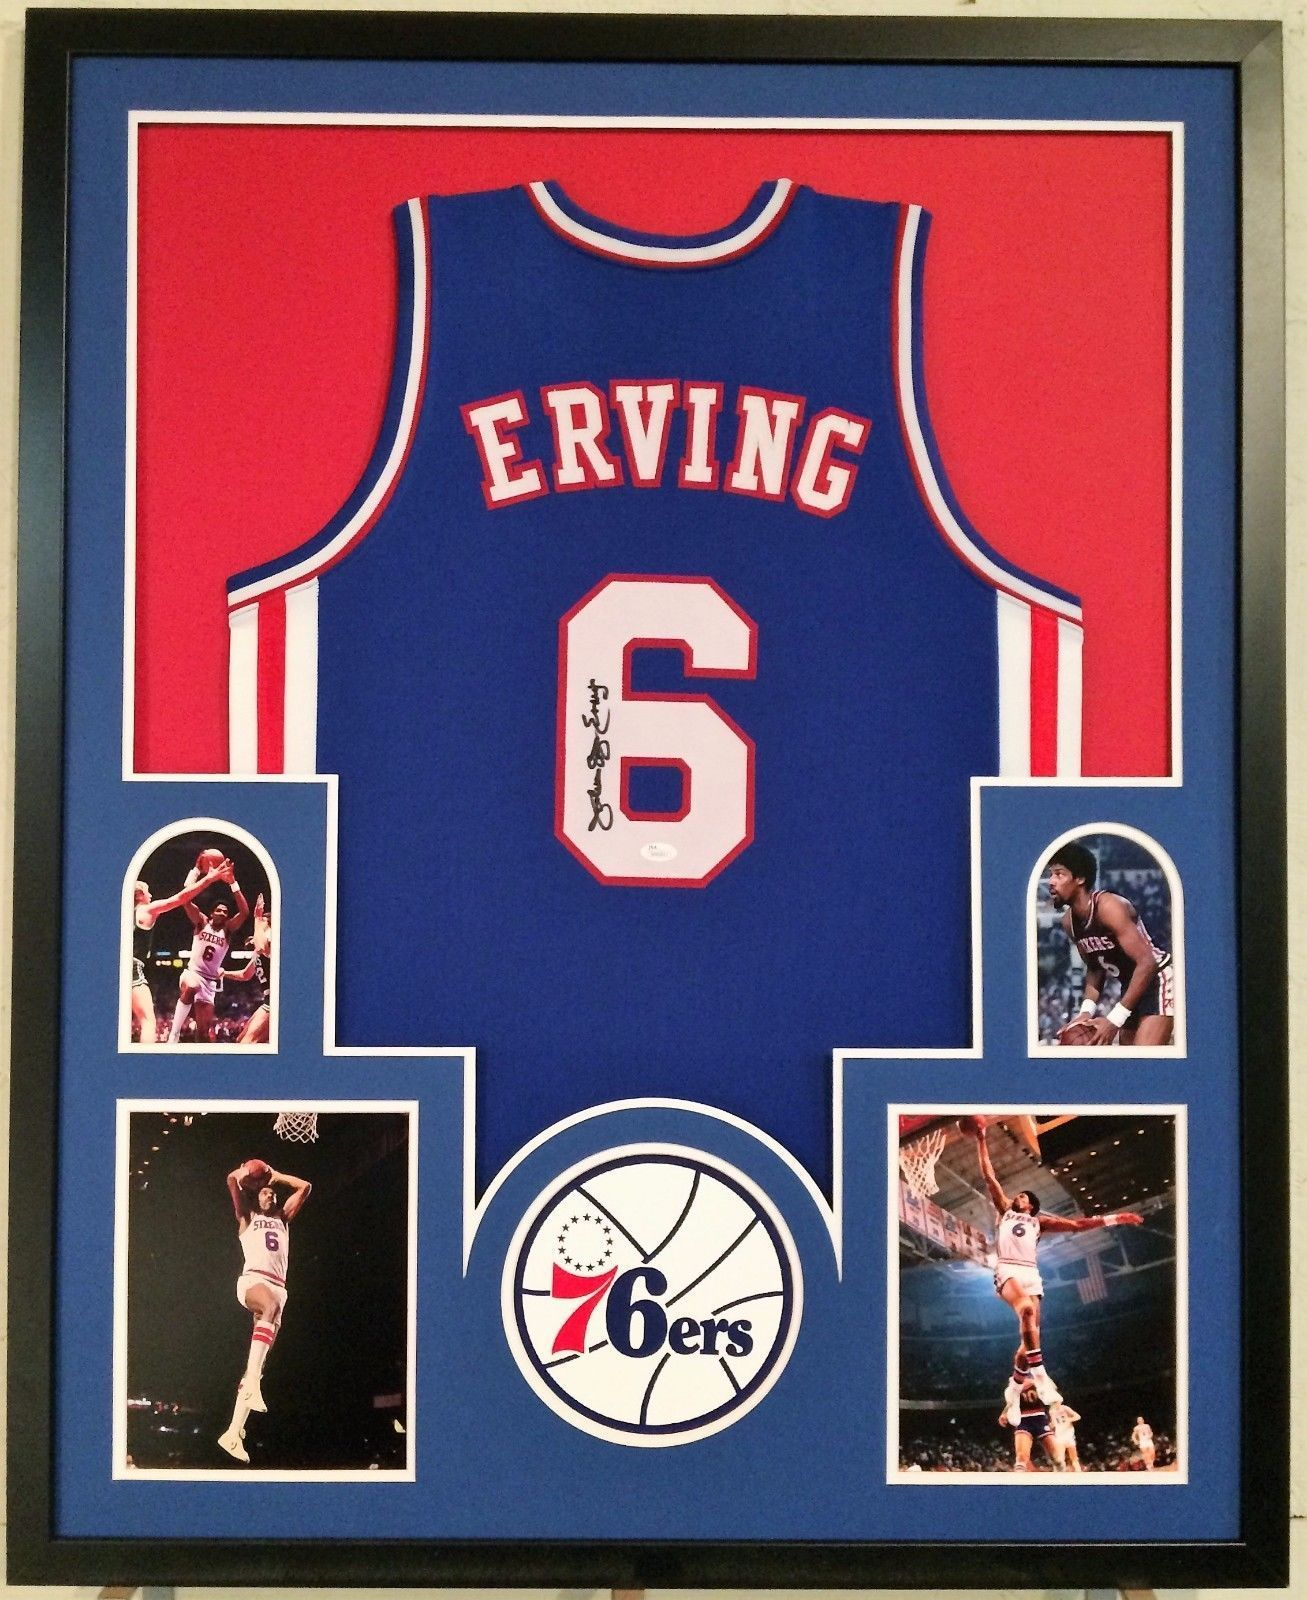 d57027d6fc51 FRAMED JULIUS ERVING DR. J SIGNED PHILADELPHIA 76ERS JERSEY JSA W  AUTHENTICATED - Jerseys